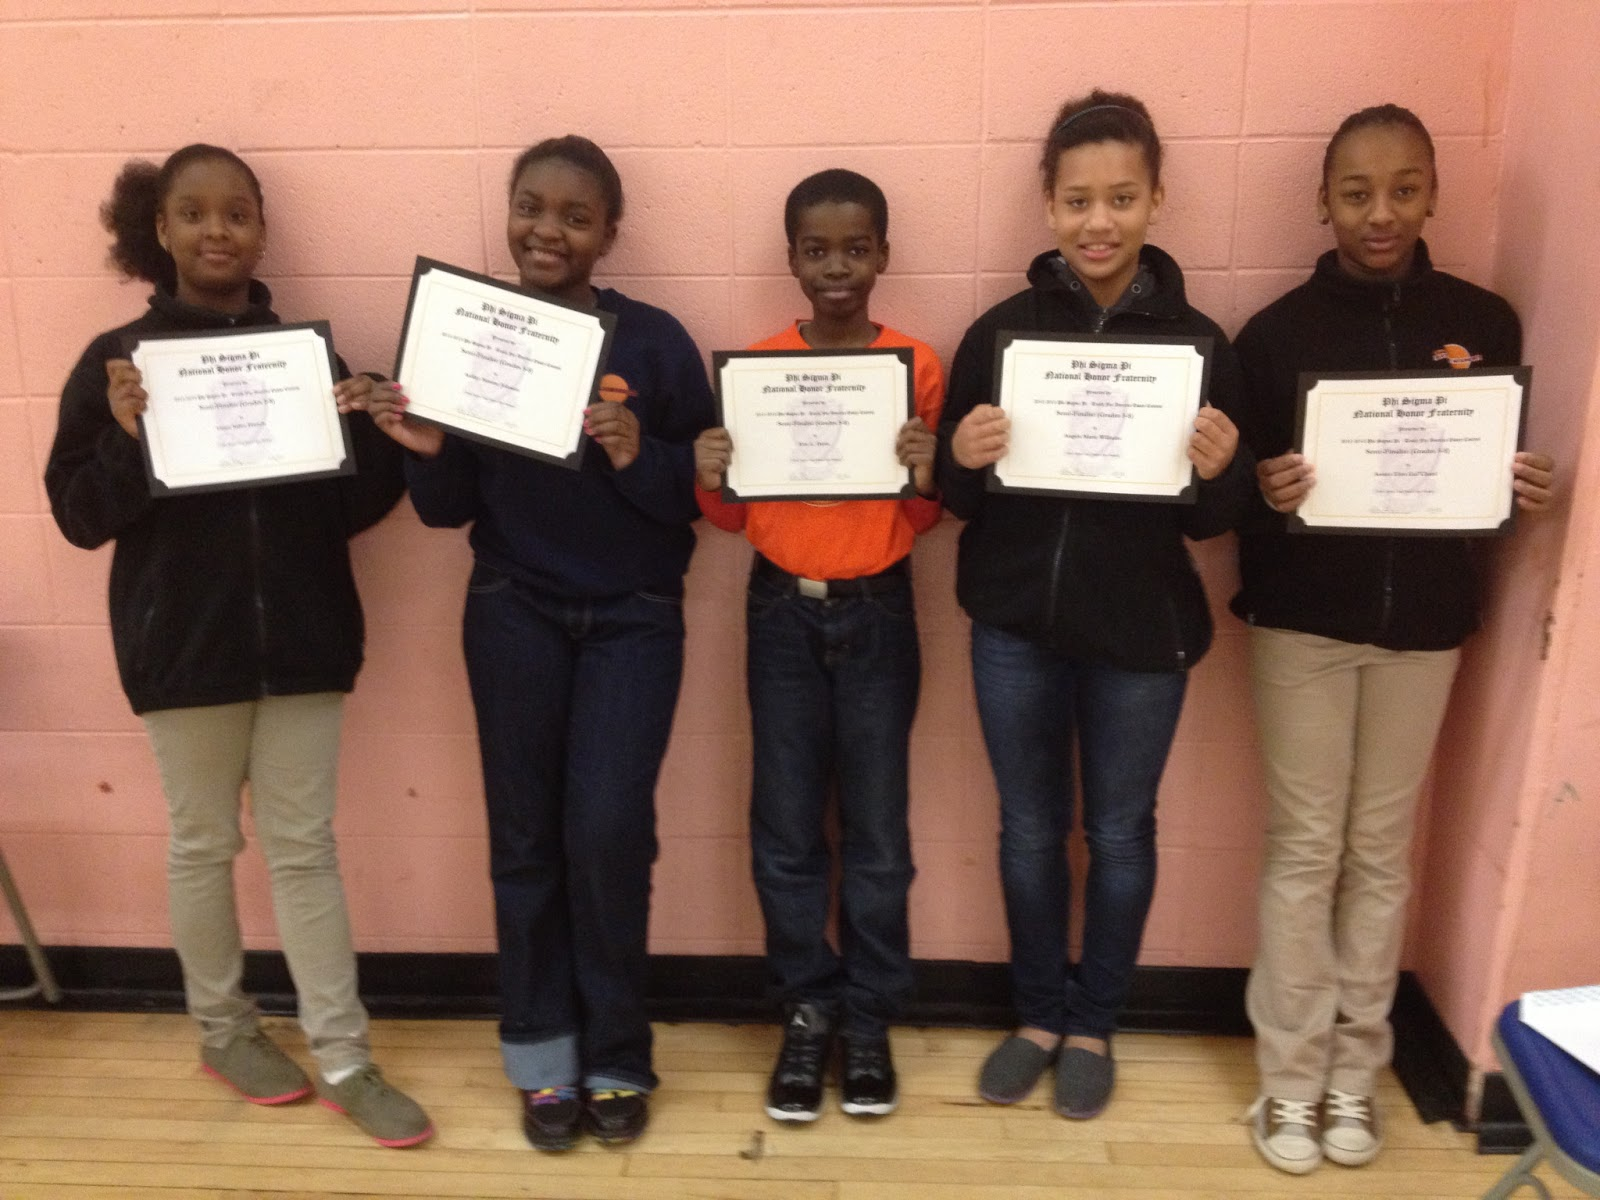 6th grade english mr t excitement in the sixth grade teach for america national essay contest and two of these students won the top honors in the middle school division you can their prize winning